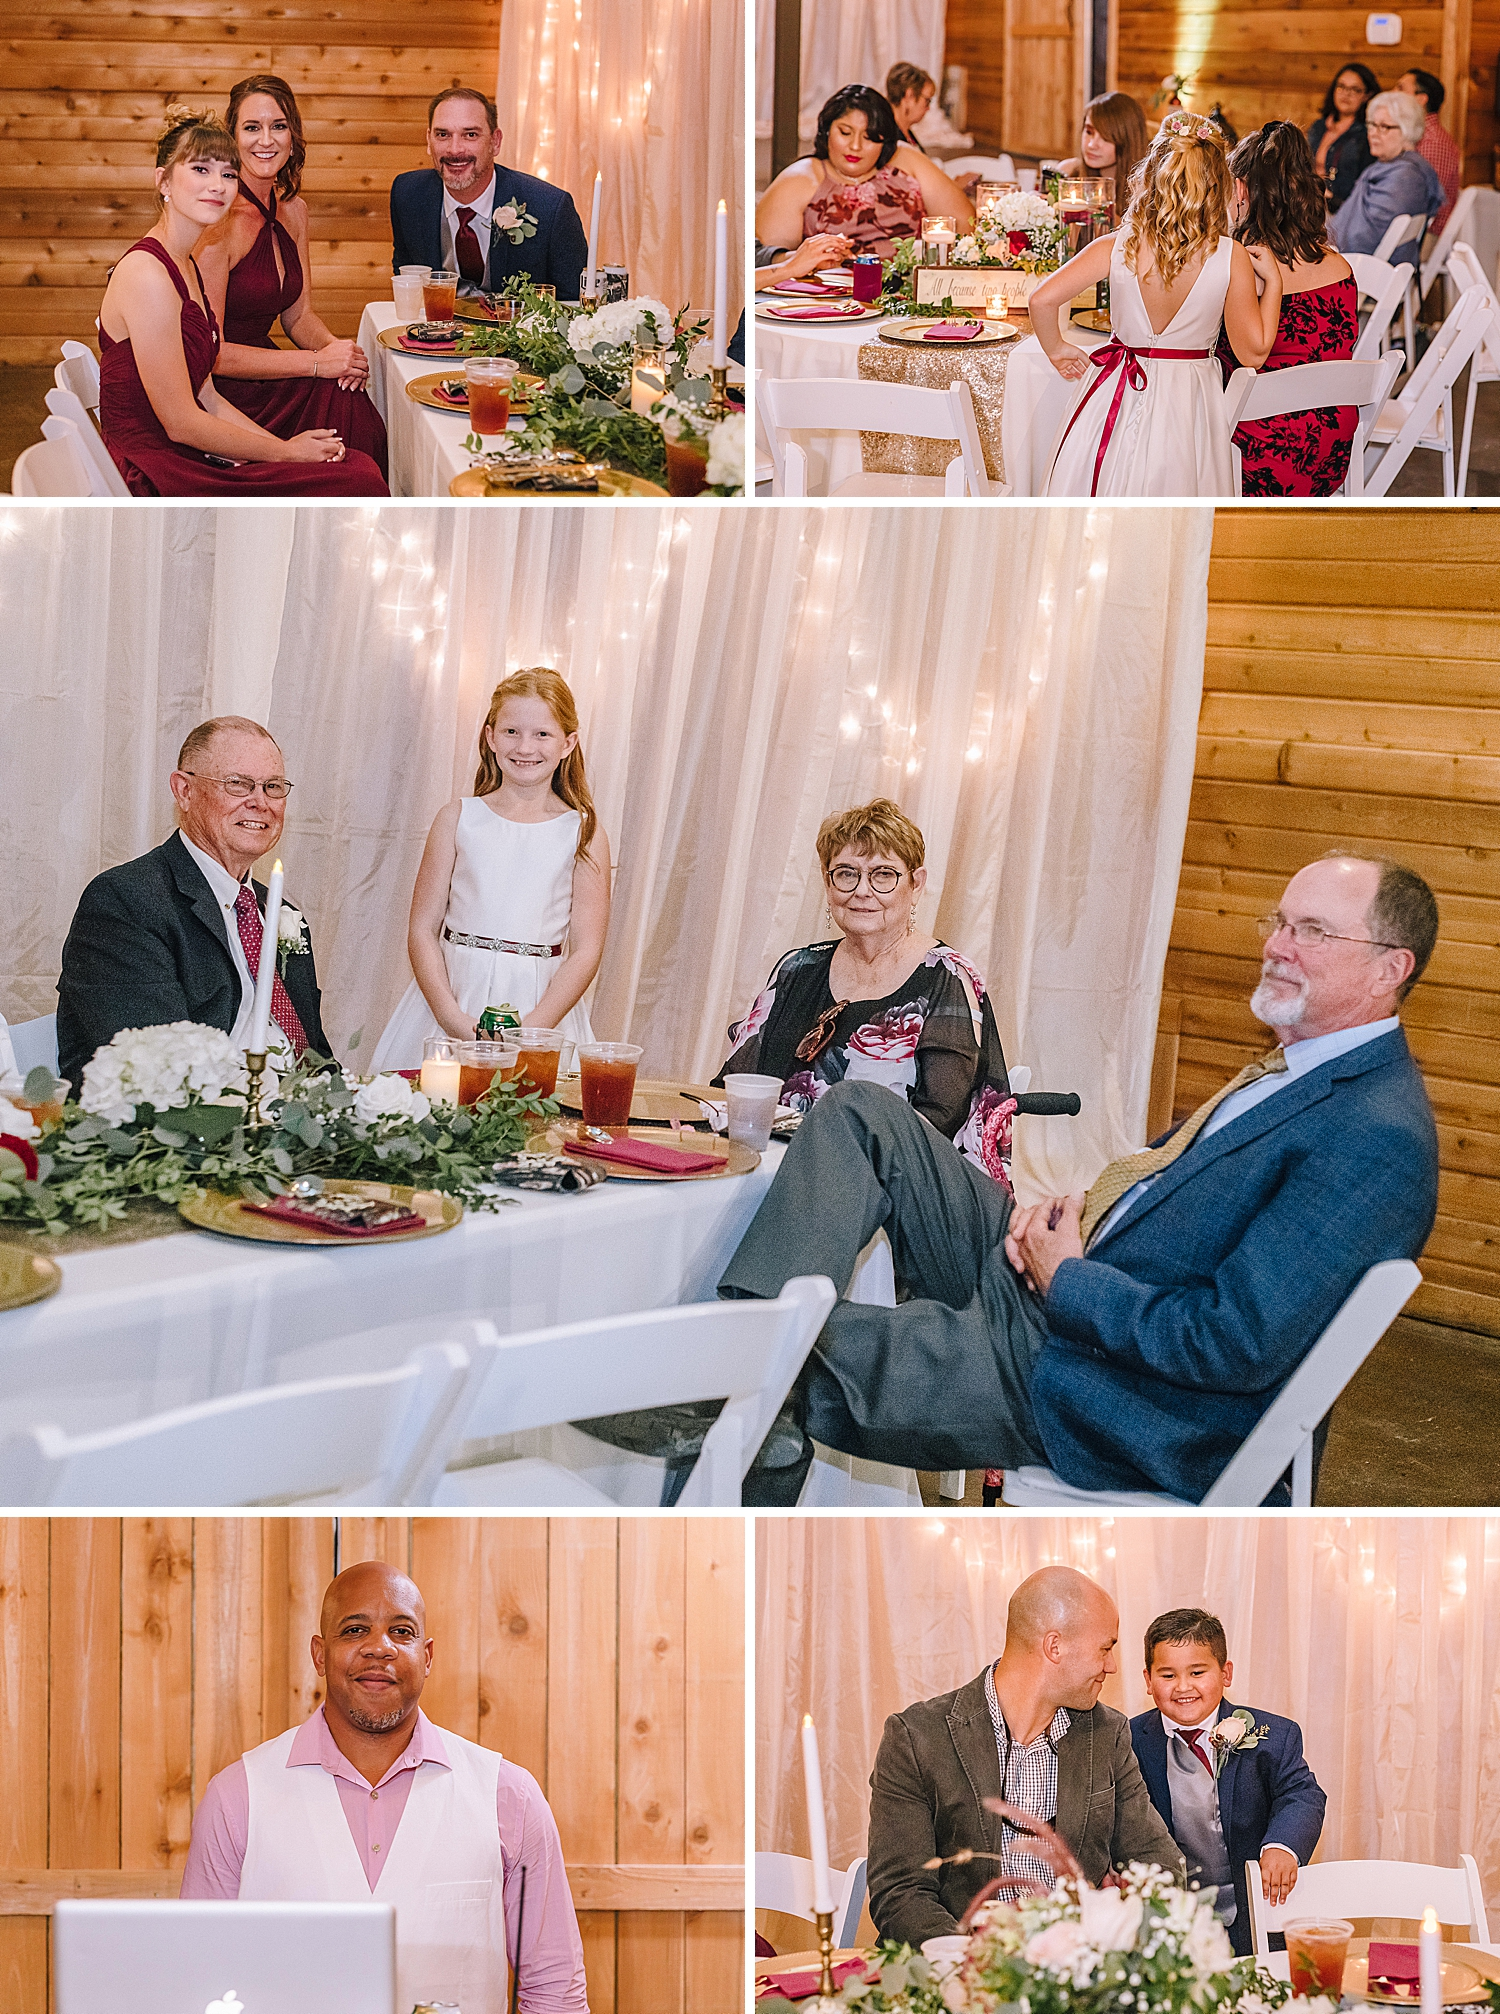 Geronimo-Oaks-Wedding-Venue-Seguin-Texas-Elegant-Navy-Burgundy-Wedding-Carly-Barton-Photography_0065.jpg